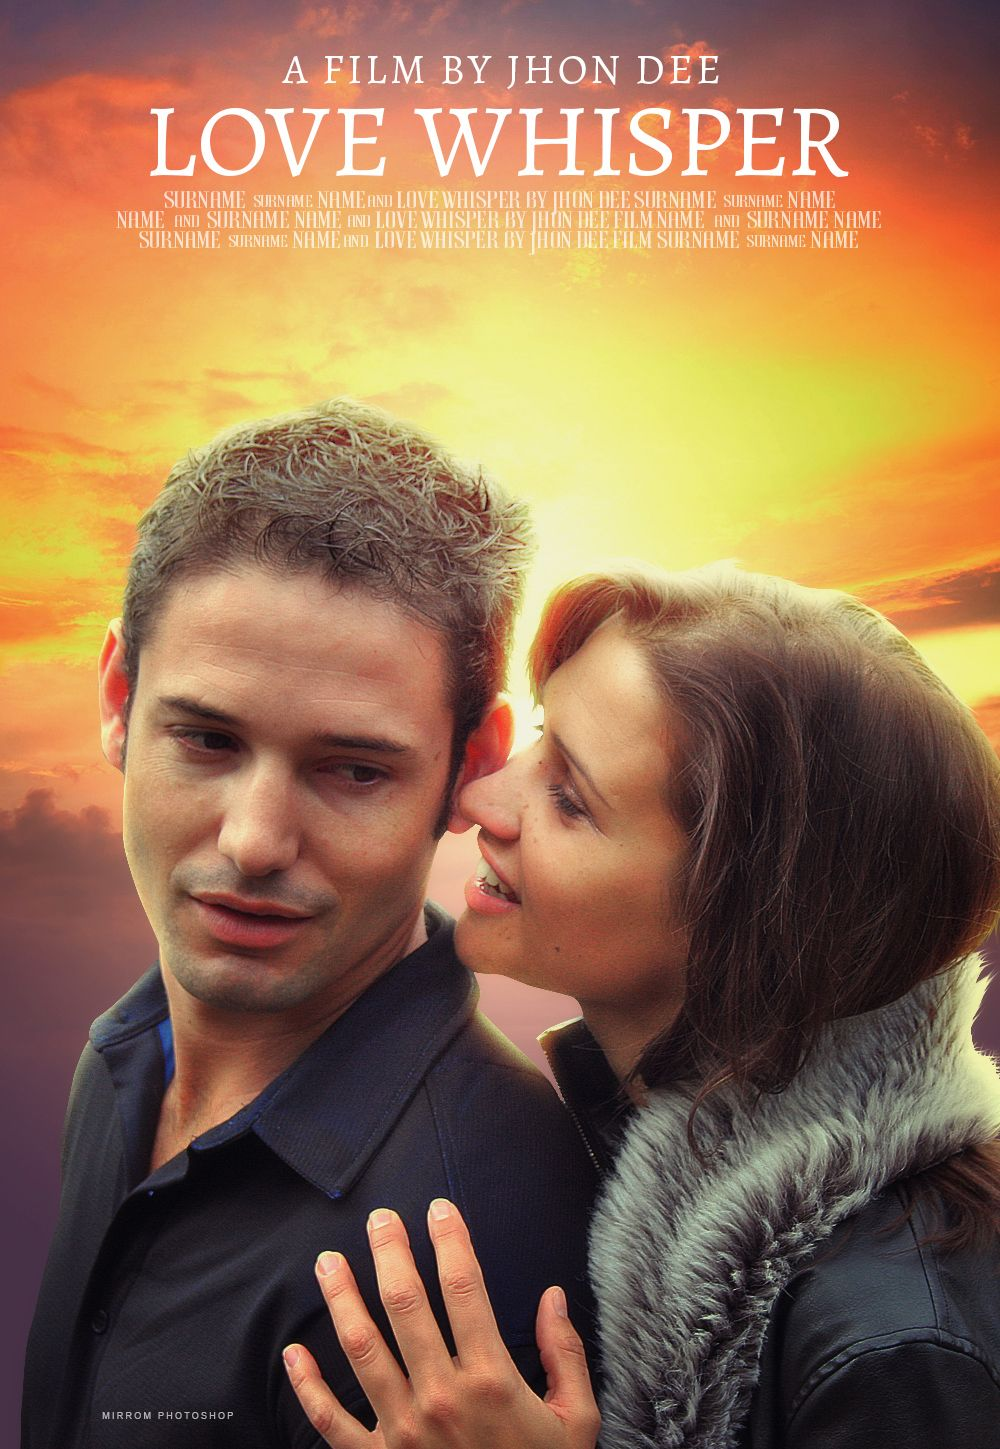 Create A Simple Romantic Movie Poster In Photoshop Cc Romantic